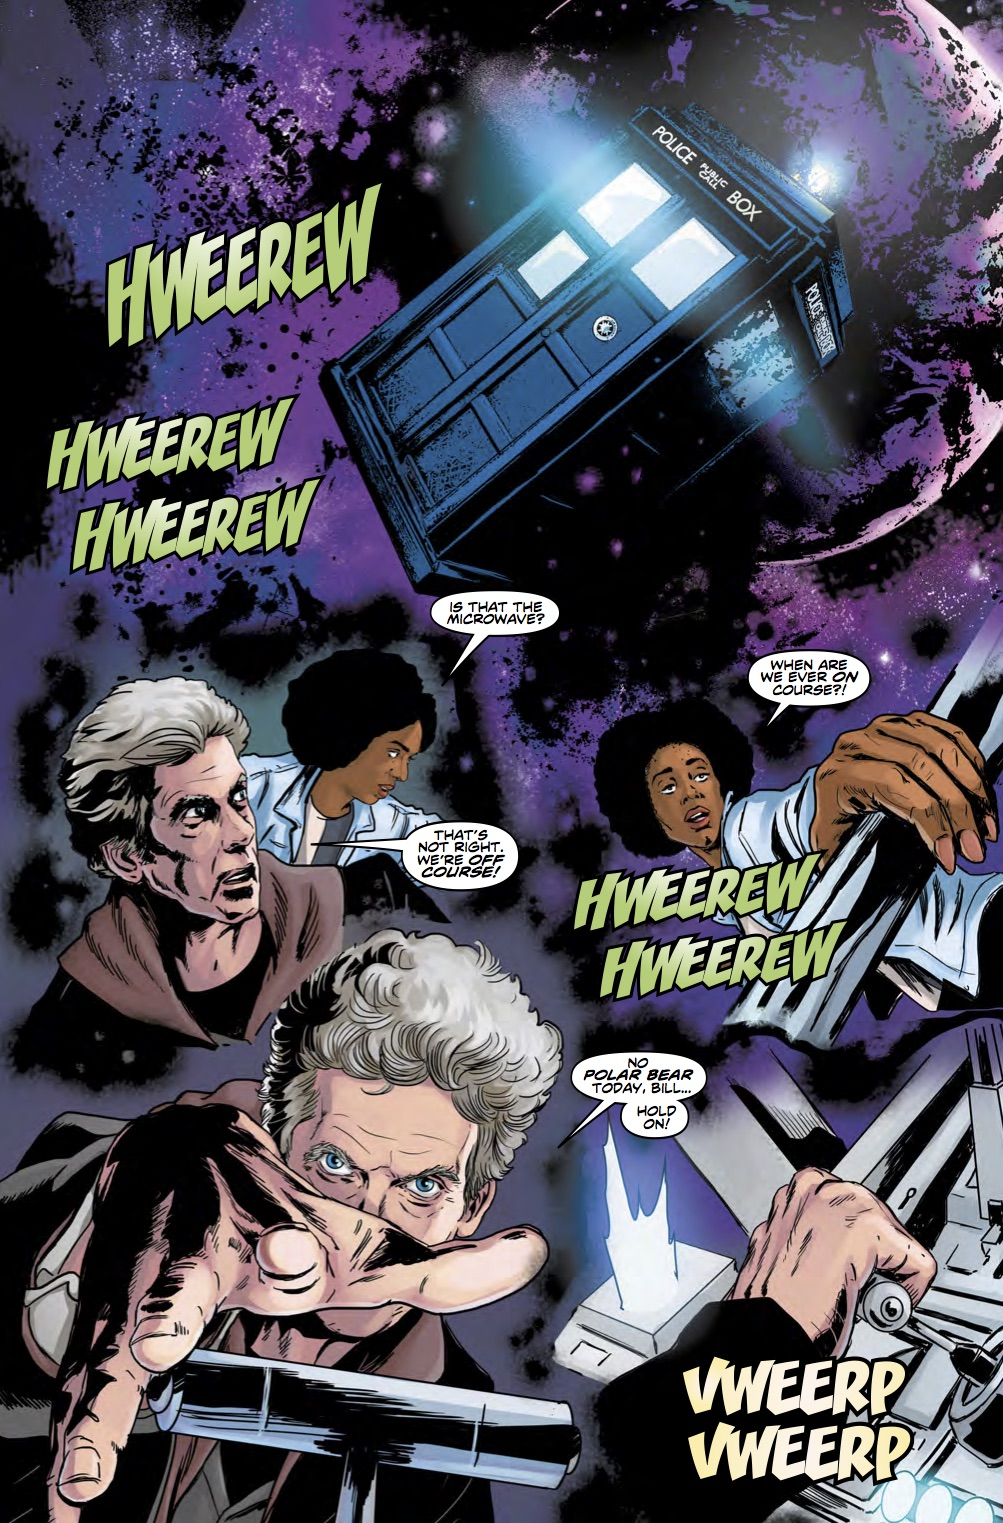 Doctor Who 12th Year Three #5 Page 5 (Credit: Titan)